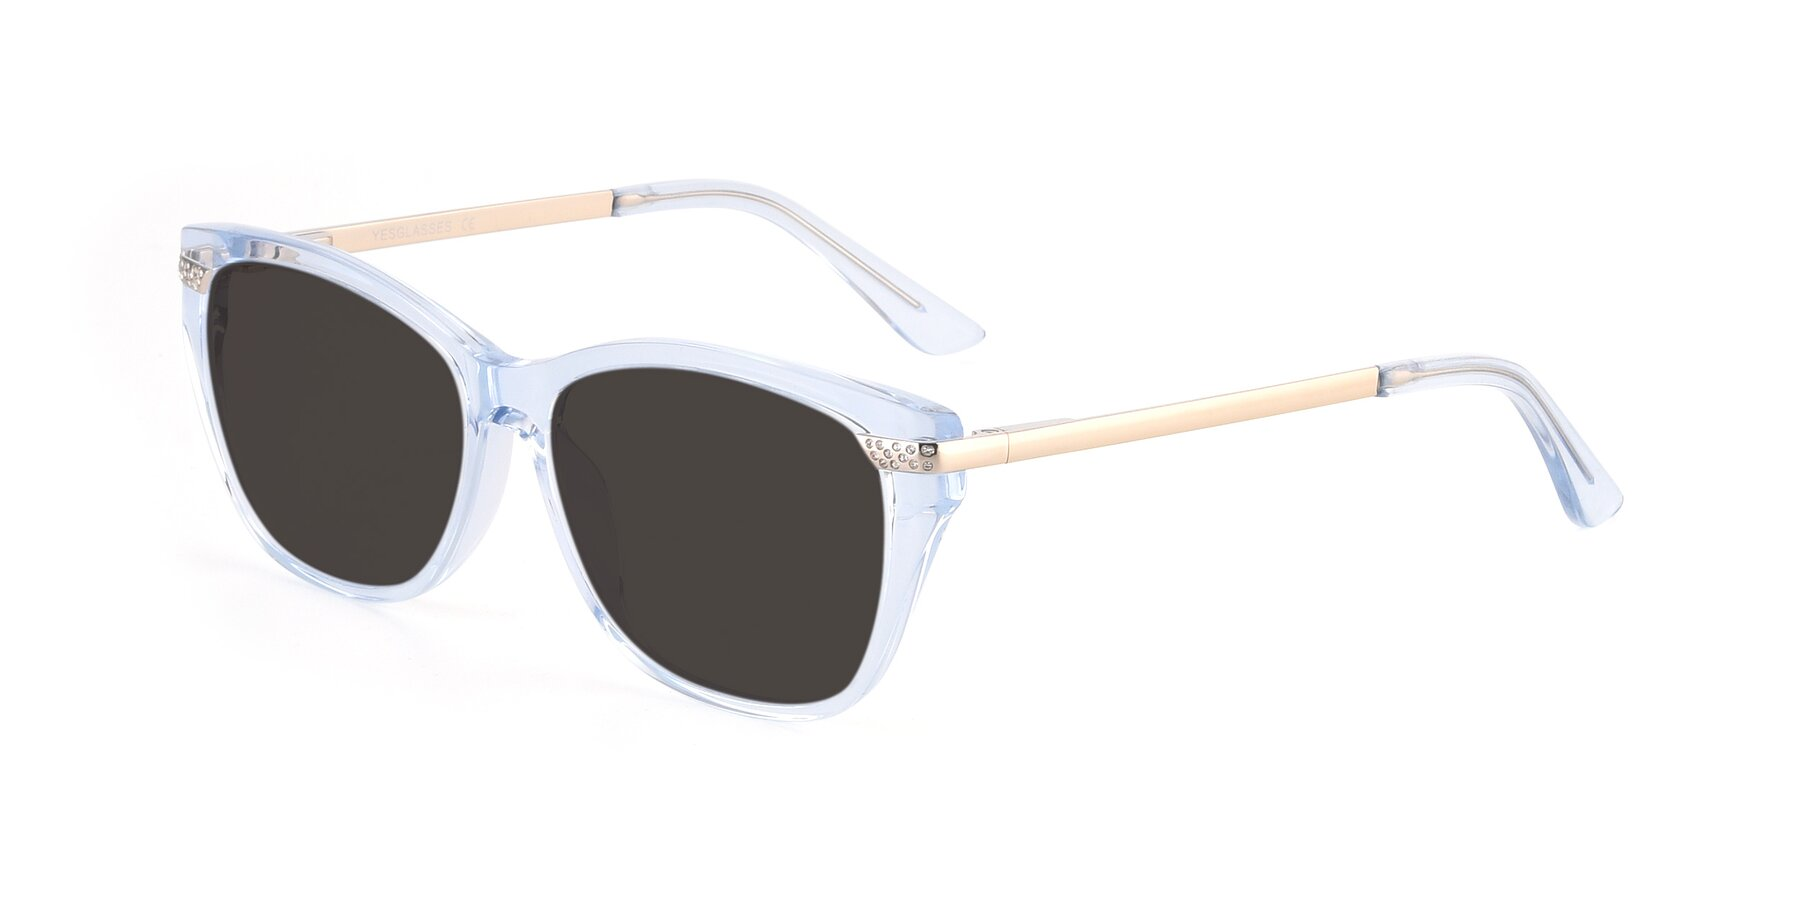 Angle of 17515 in Transparent Blue with Gray Tinted Lenses